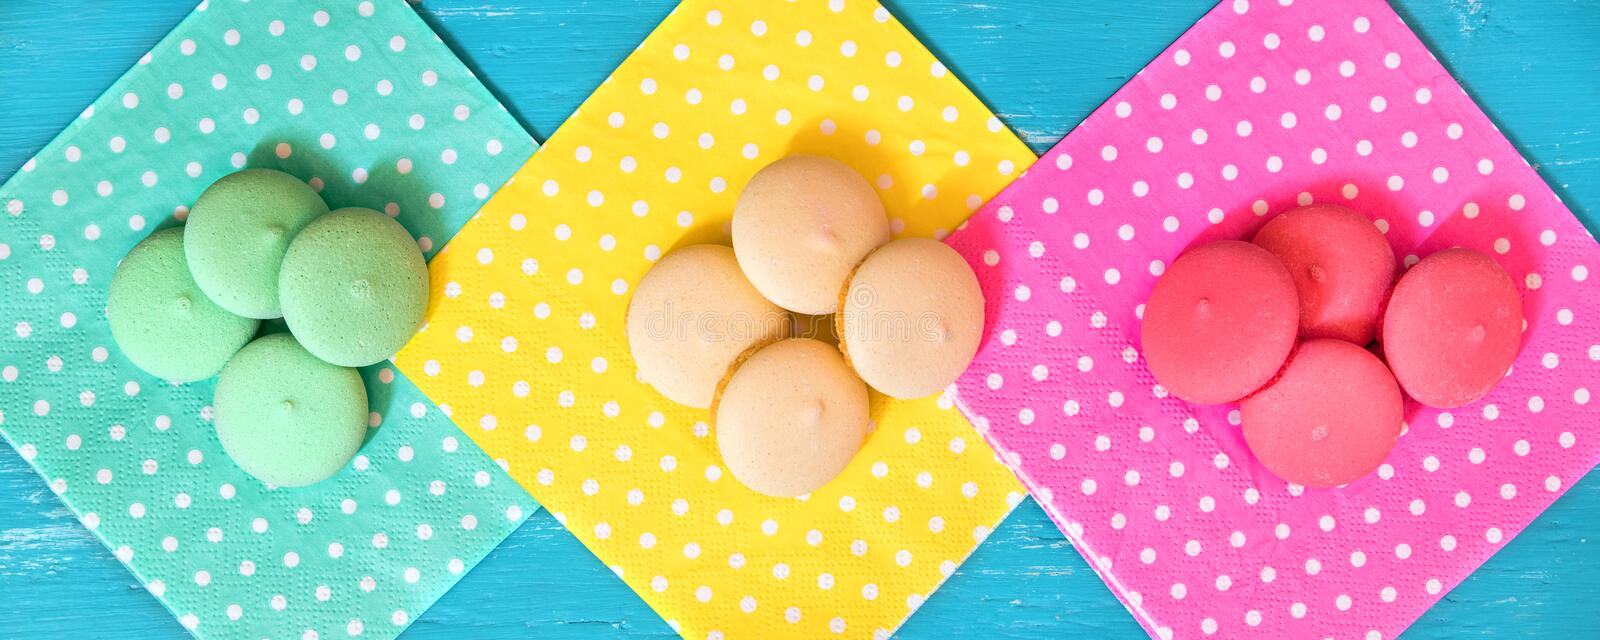 Header, colorful macarons or biscuits on different dotted napkin royalty free stock image